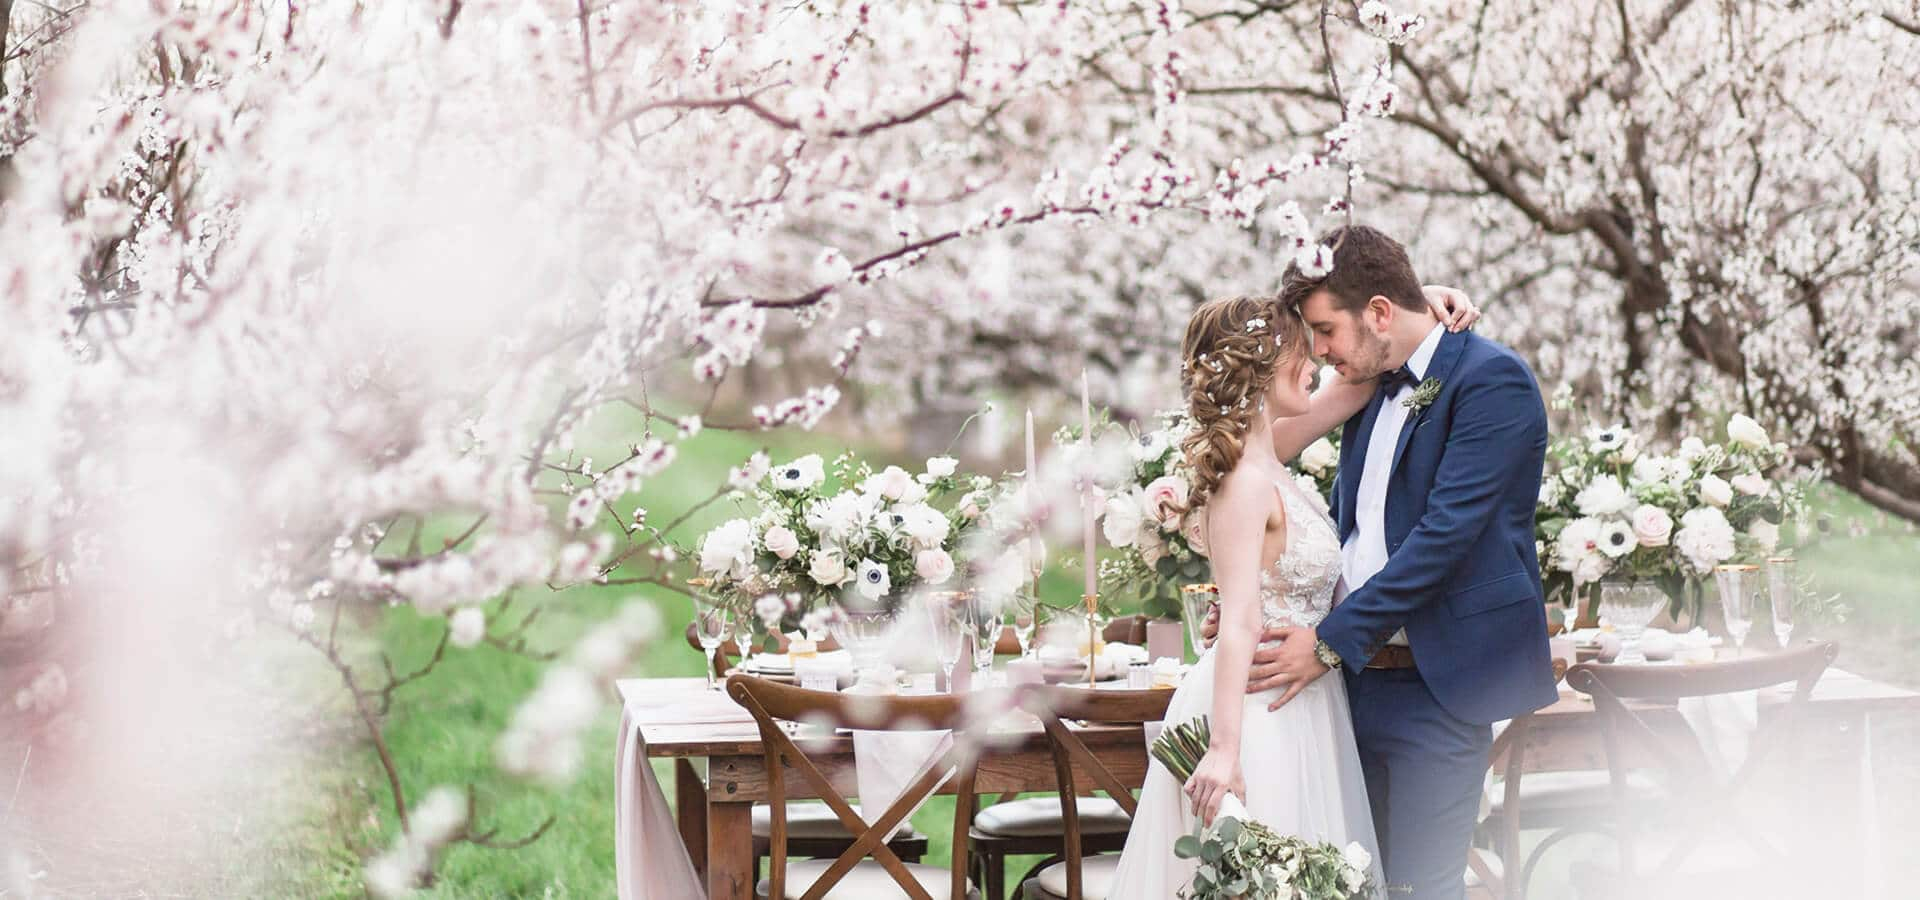 Hero image for Romantic, Earthy Spring Cherry Blossom Styled Shoot